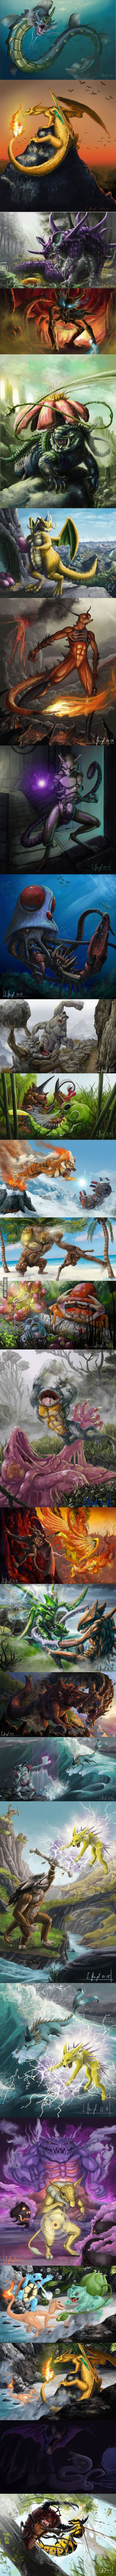 Probably one of the coolest realistic Pokemon albums I've seen. ( by Simon Gangl )